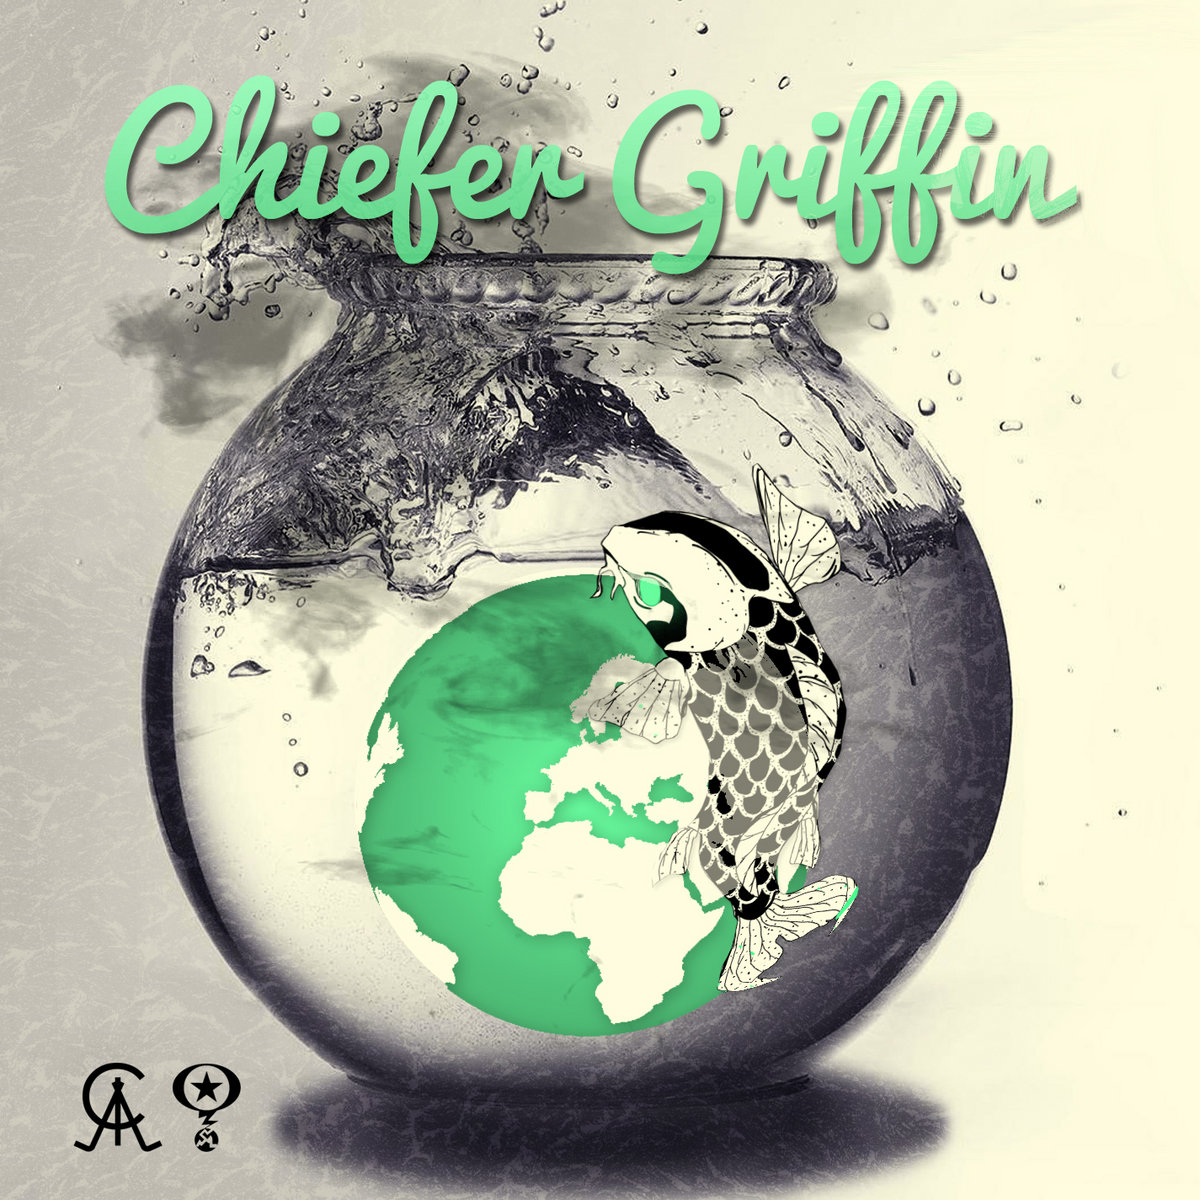 Chiefer Griffin - Chiefer Griffin